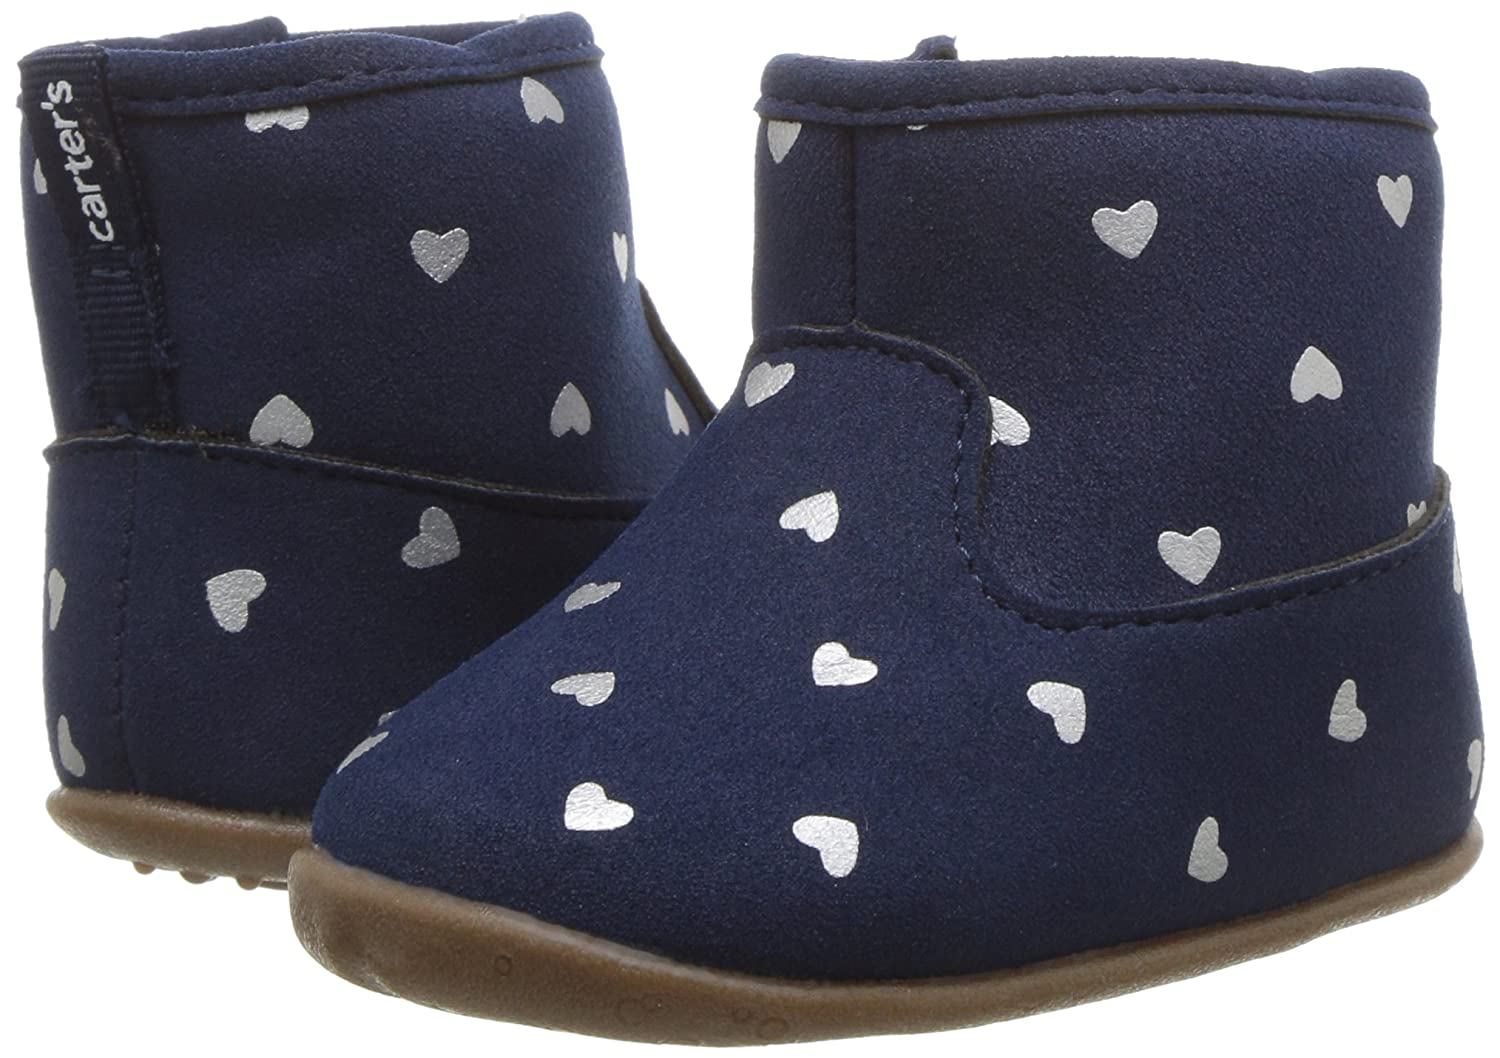 Amira-sg Fashion Boot Carters Kids Every Step Stage 2 Girls Stand